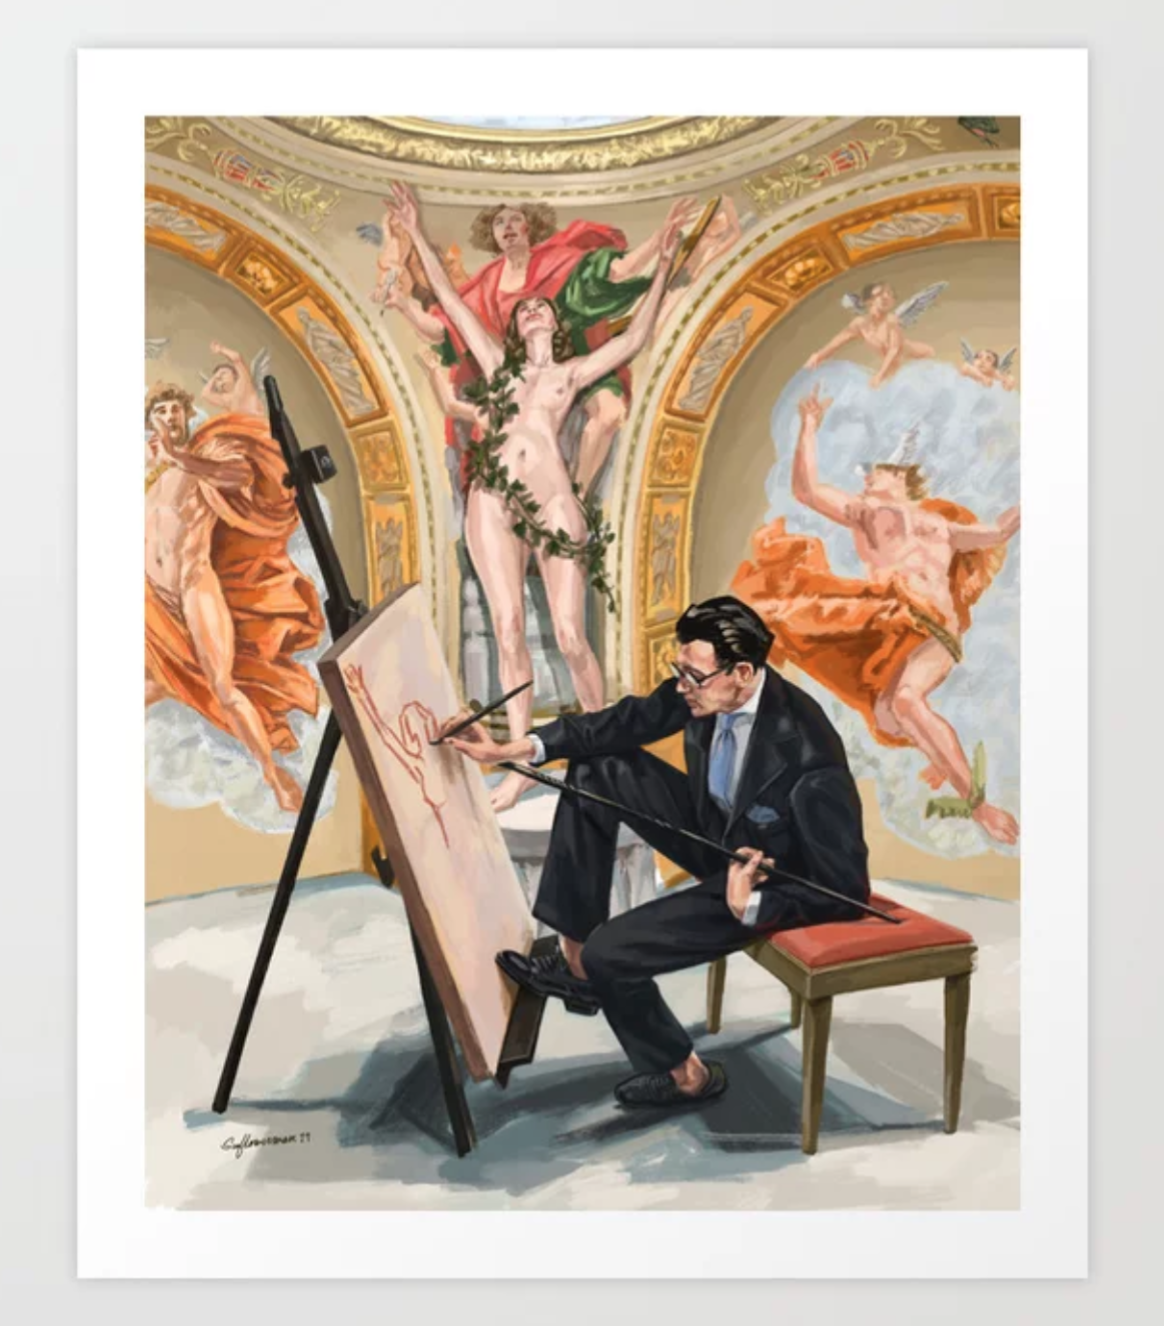 'The Artist' - With Liverano & Liverano suit styling